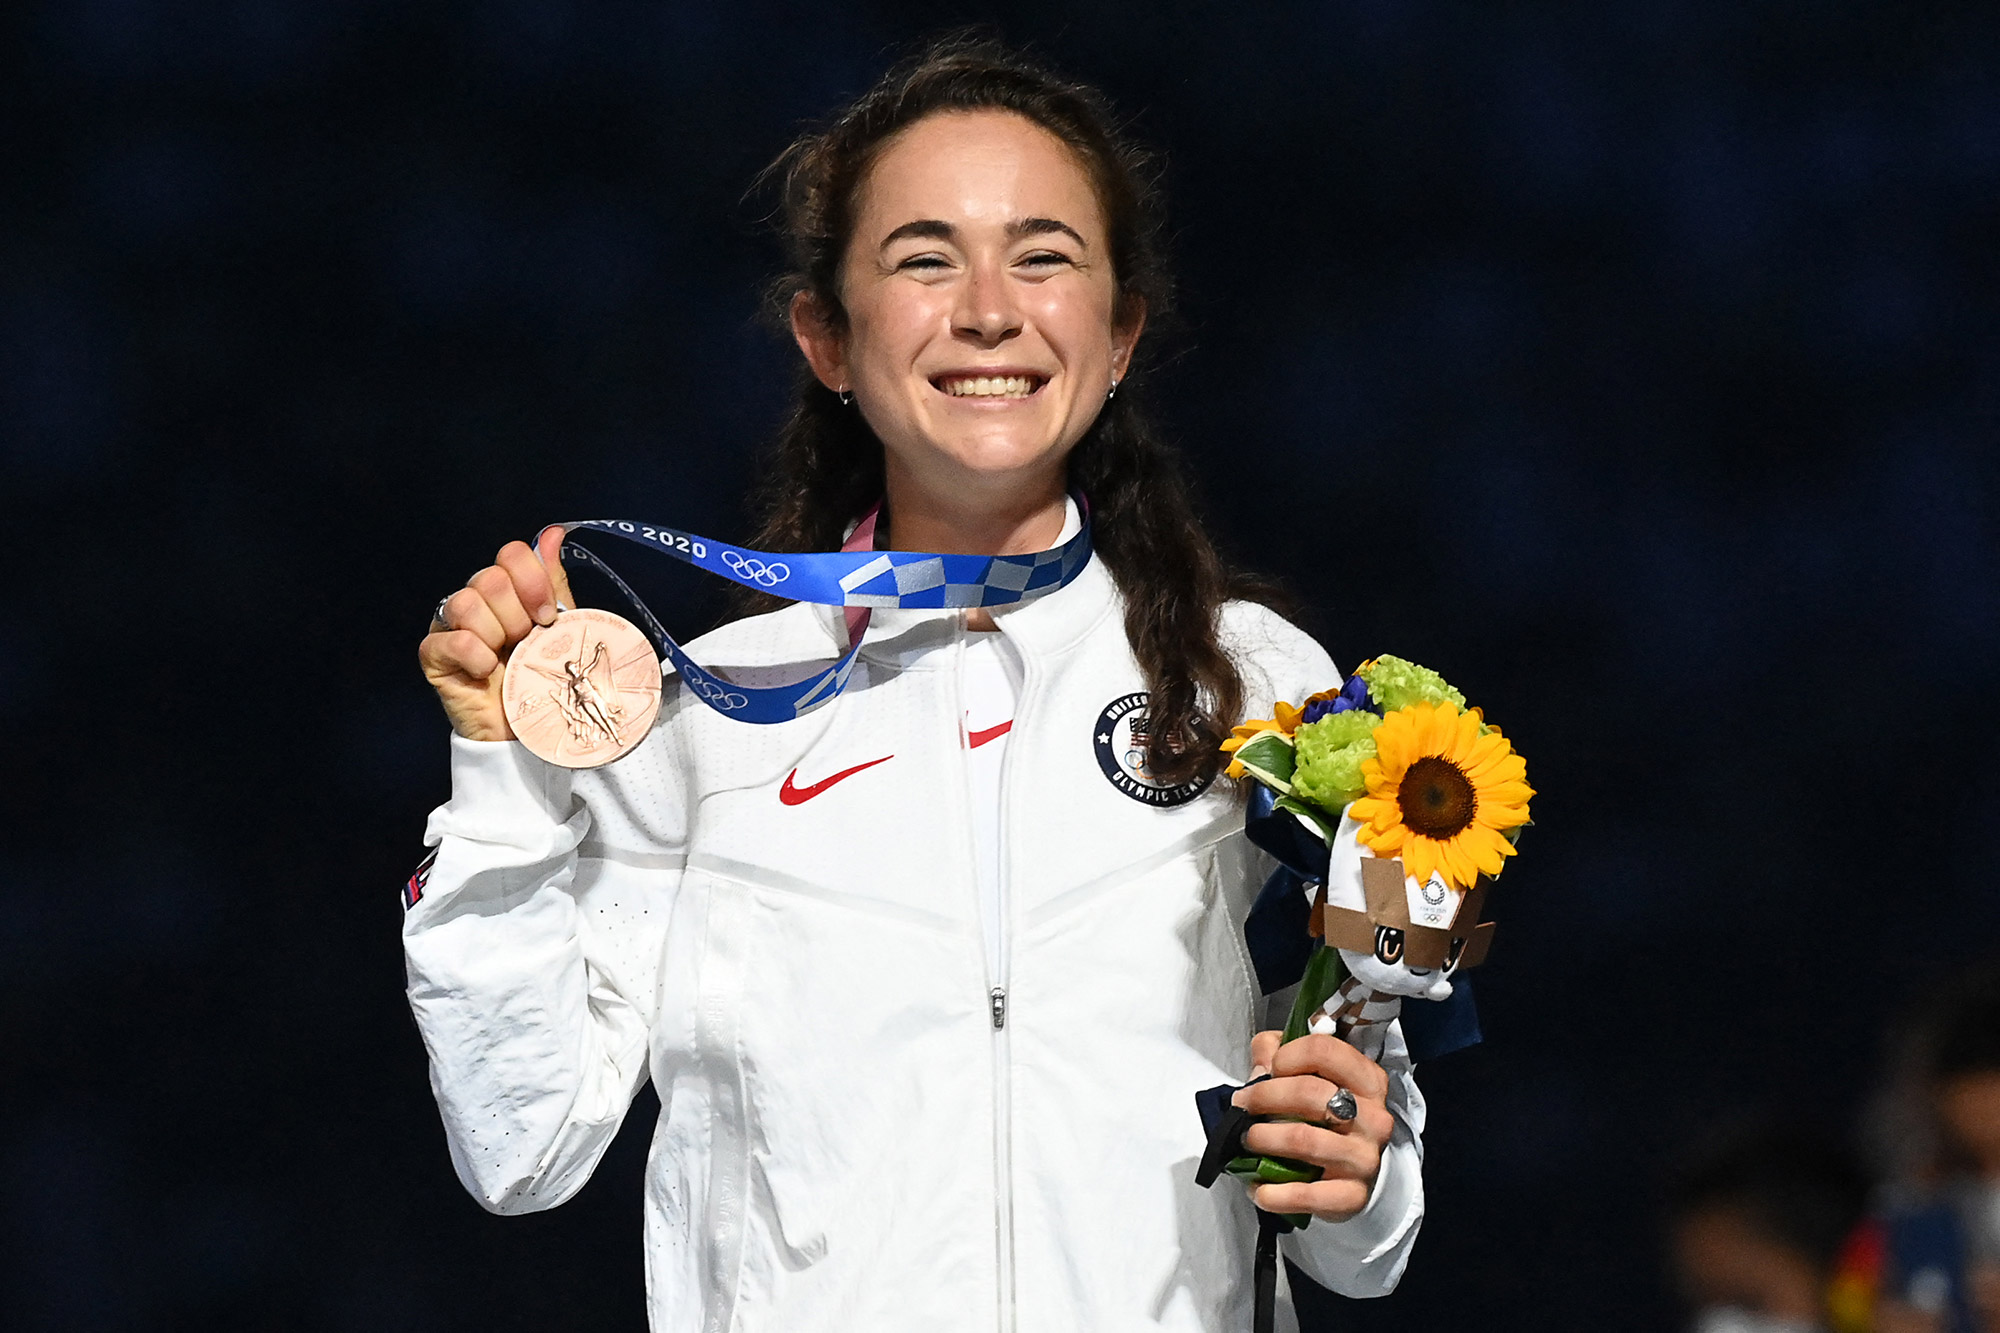 USA's Molly Seidel poses with her bronze medal during the victory ceremony of the women's marathon event during the Tokyo 2020 Olympic Games at the Olympic Stadium in Tokyo on August 8, 2021.